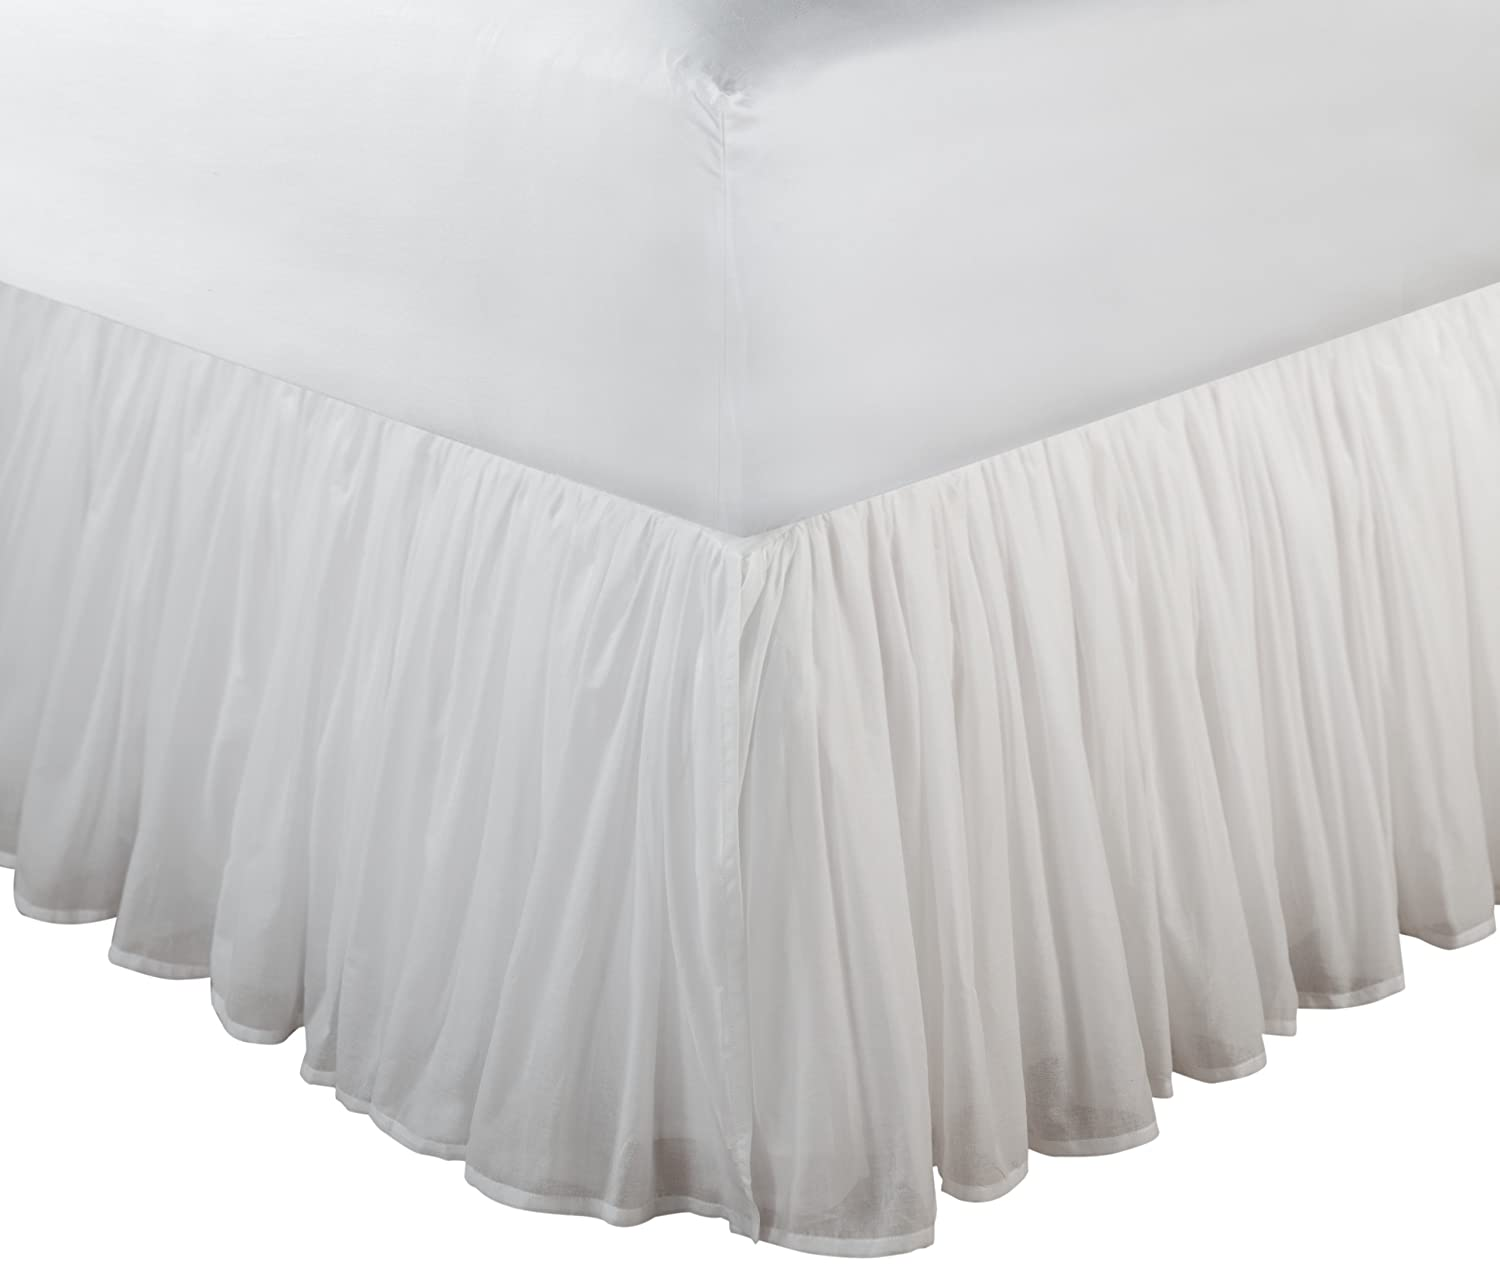 Greenland Home Fashions Cotton Voile 18 Inch White Bed Skirt Queen Amazon Co Uk Kitchen Home